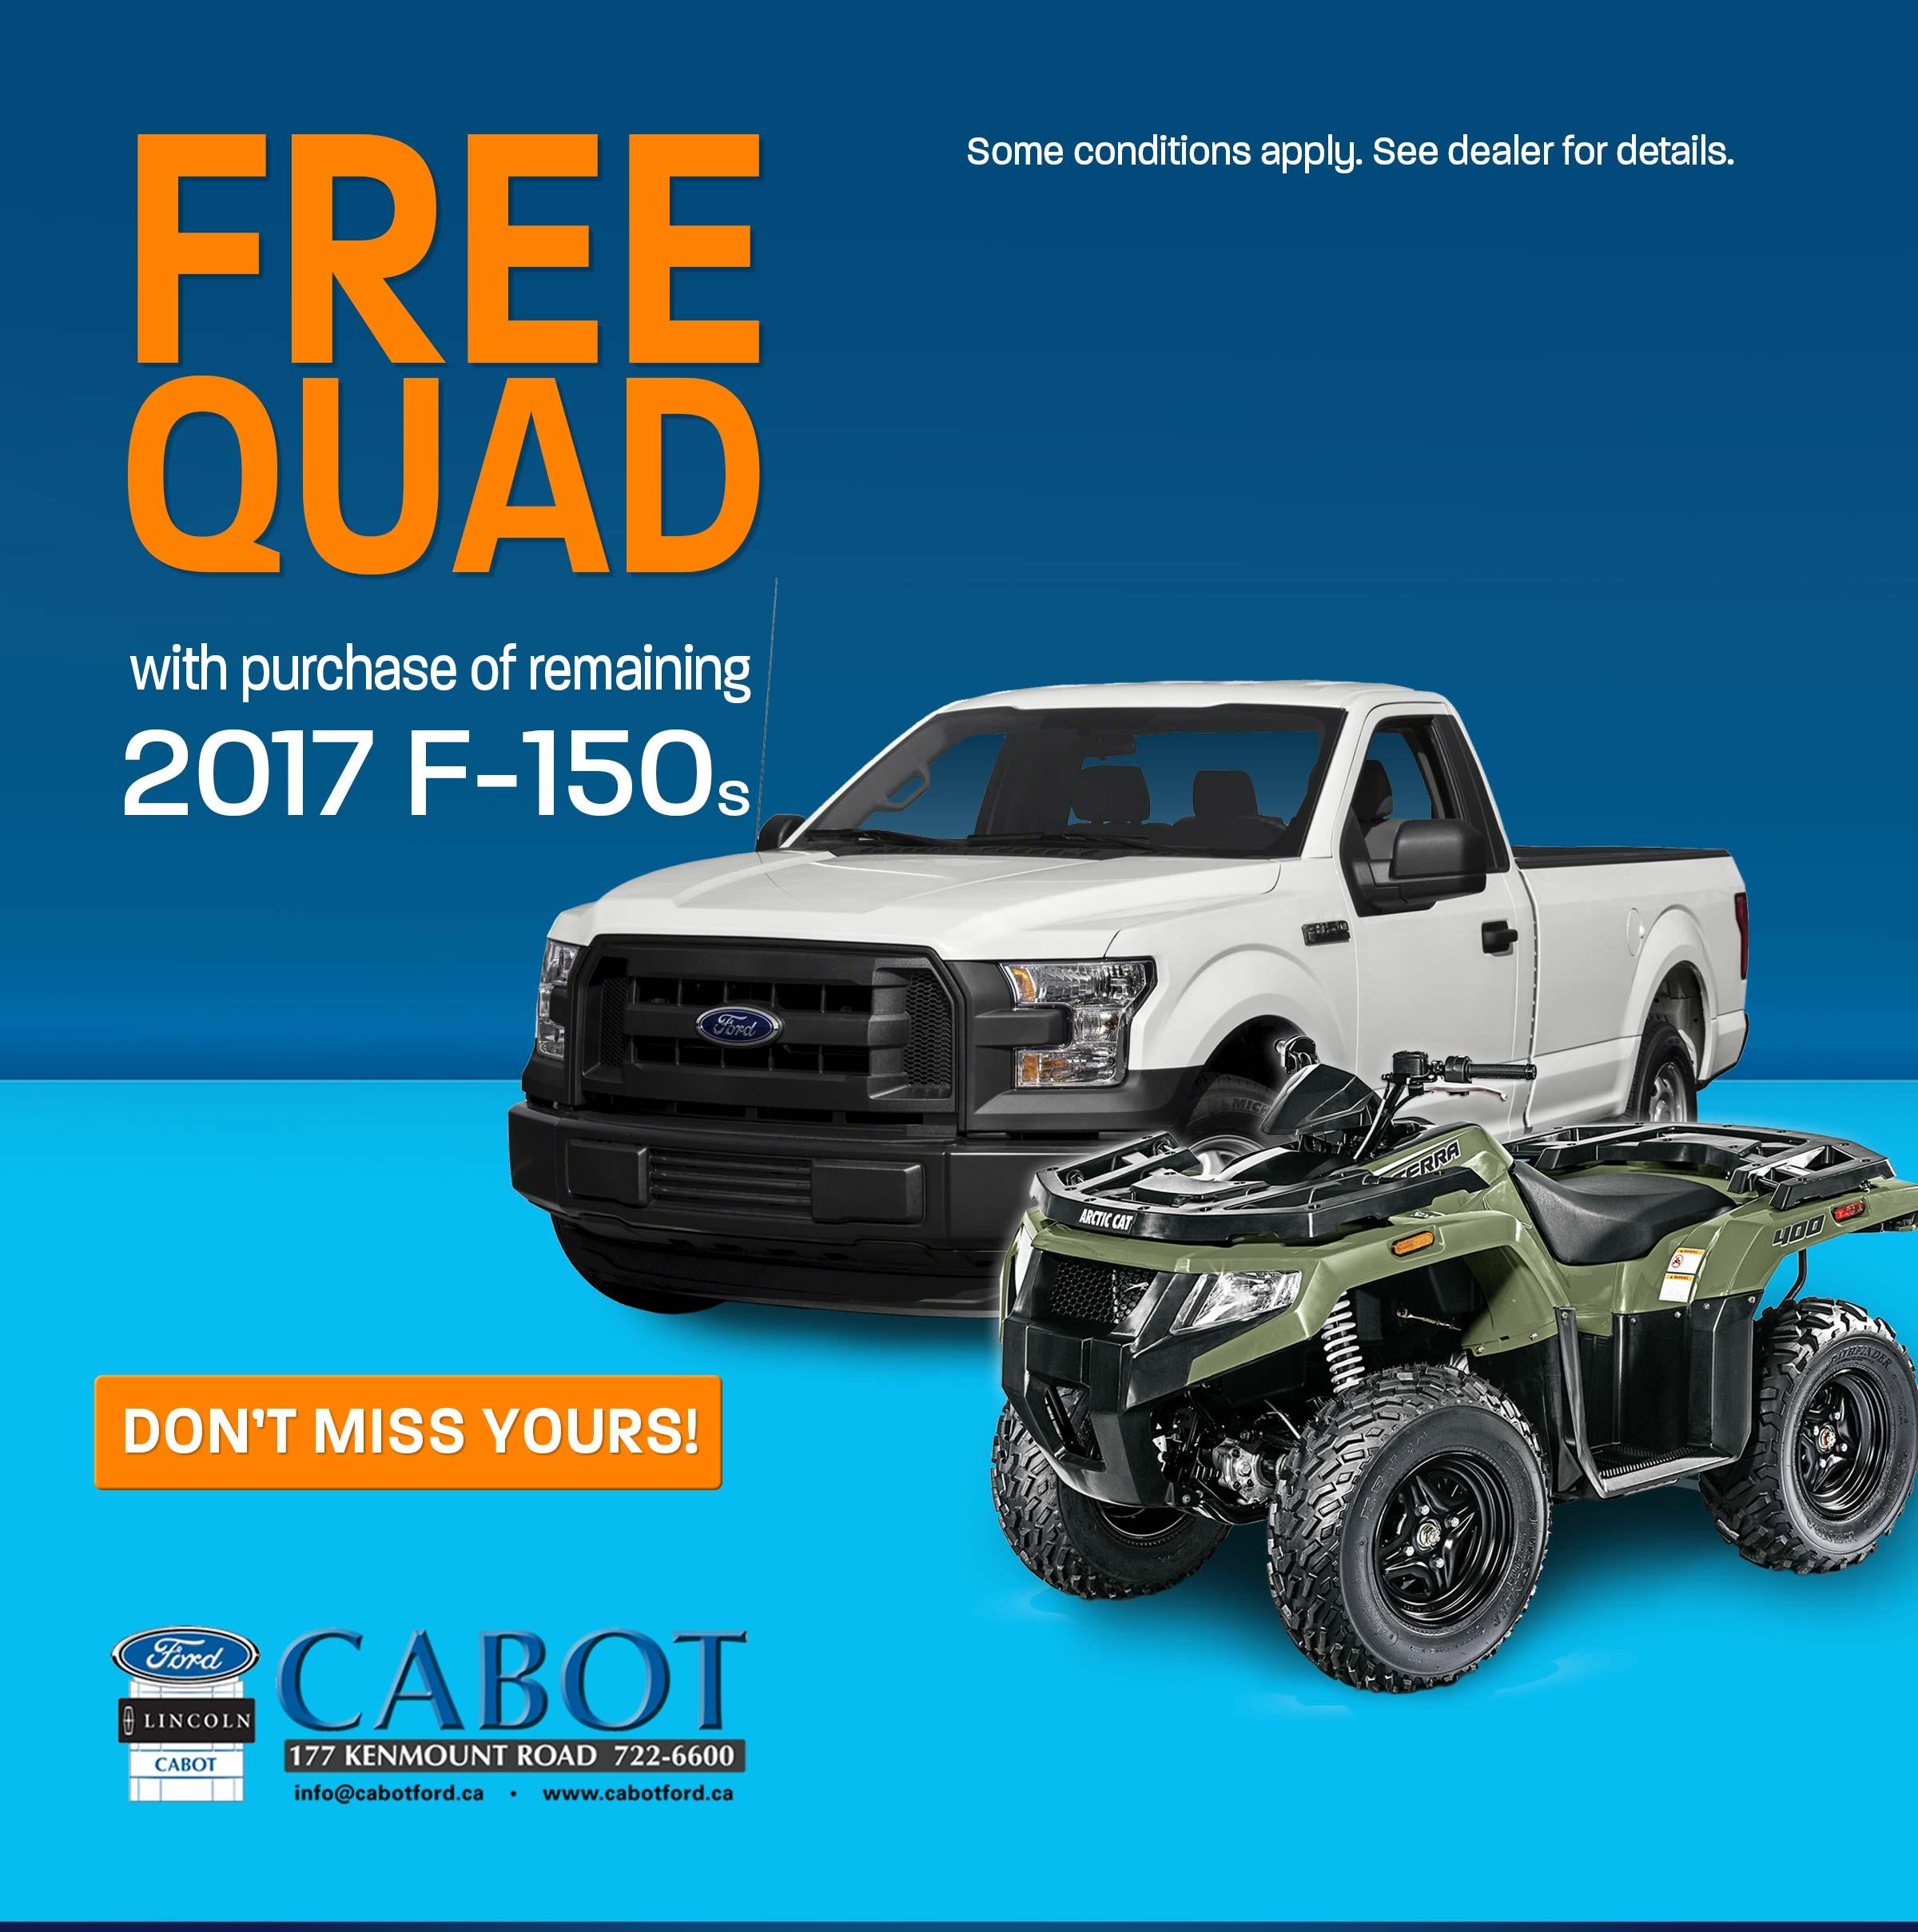 Free Quad with purchase of remaining 2017 F-150S